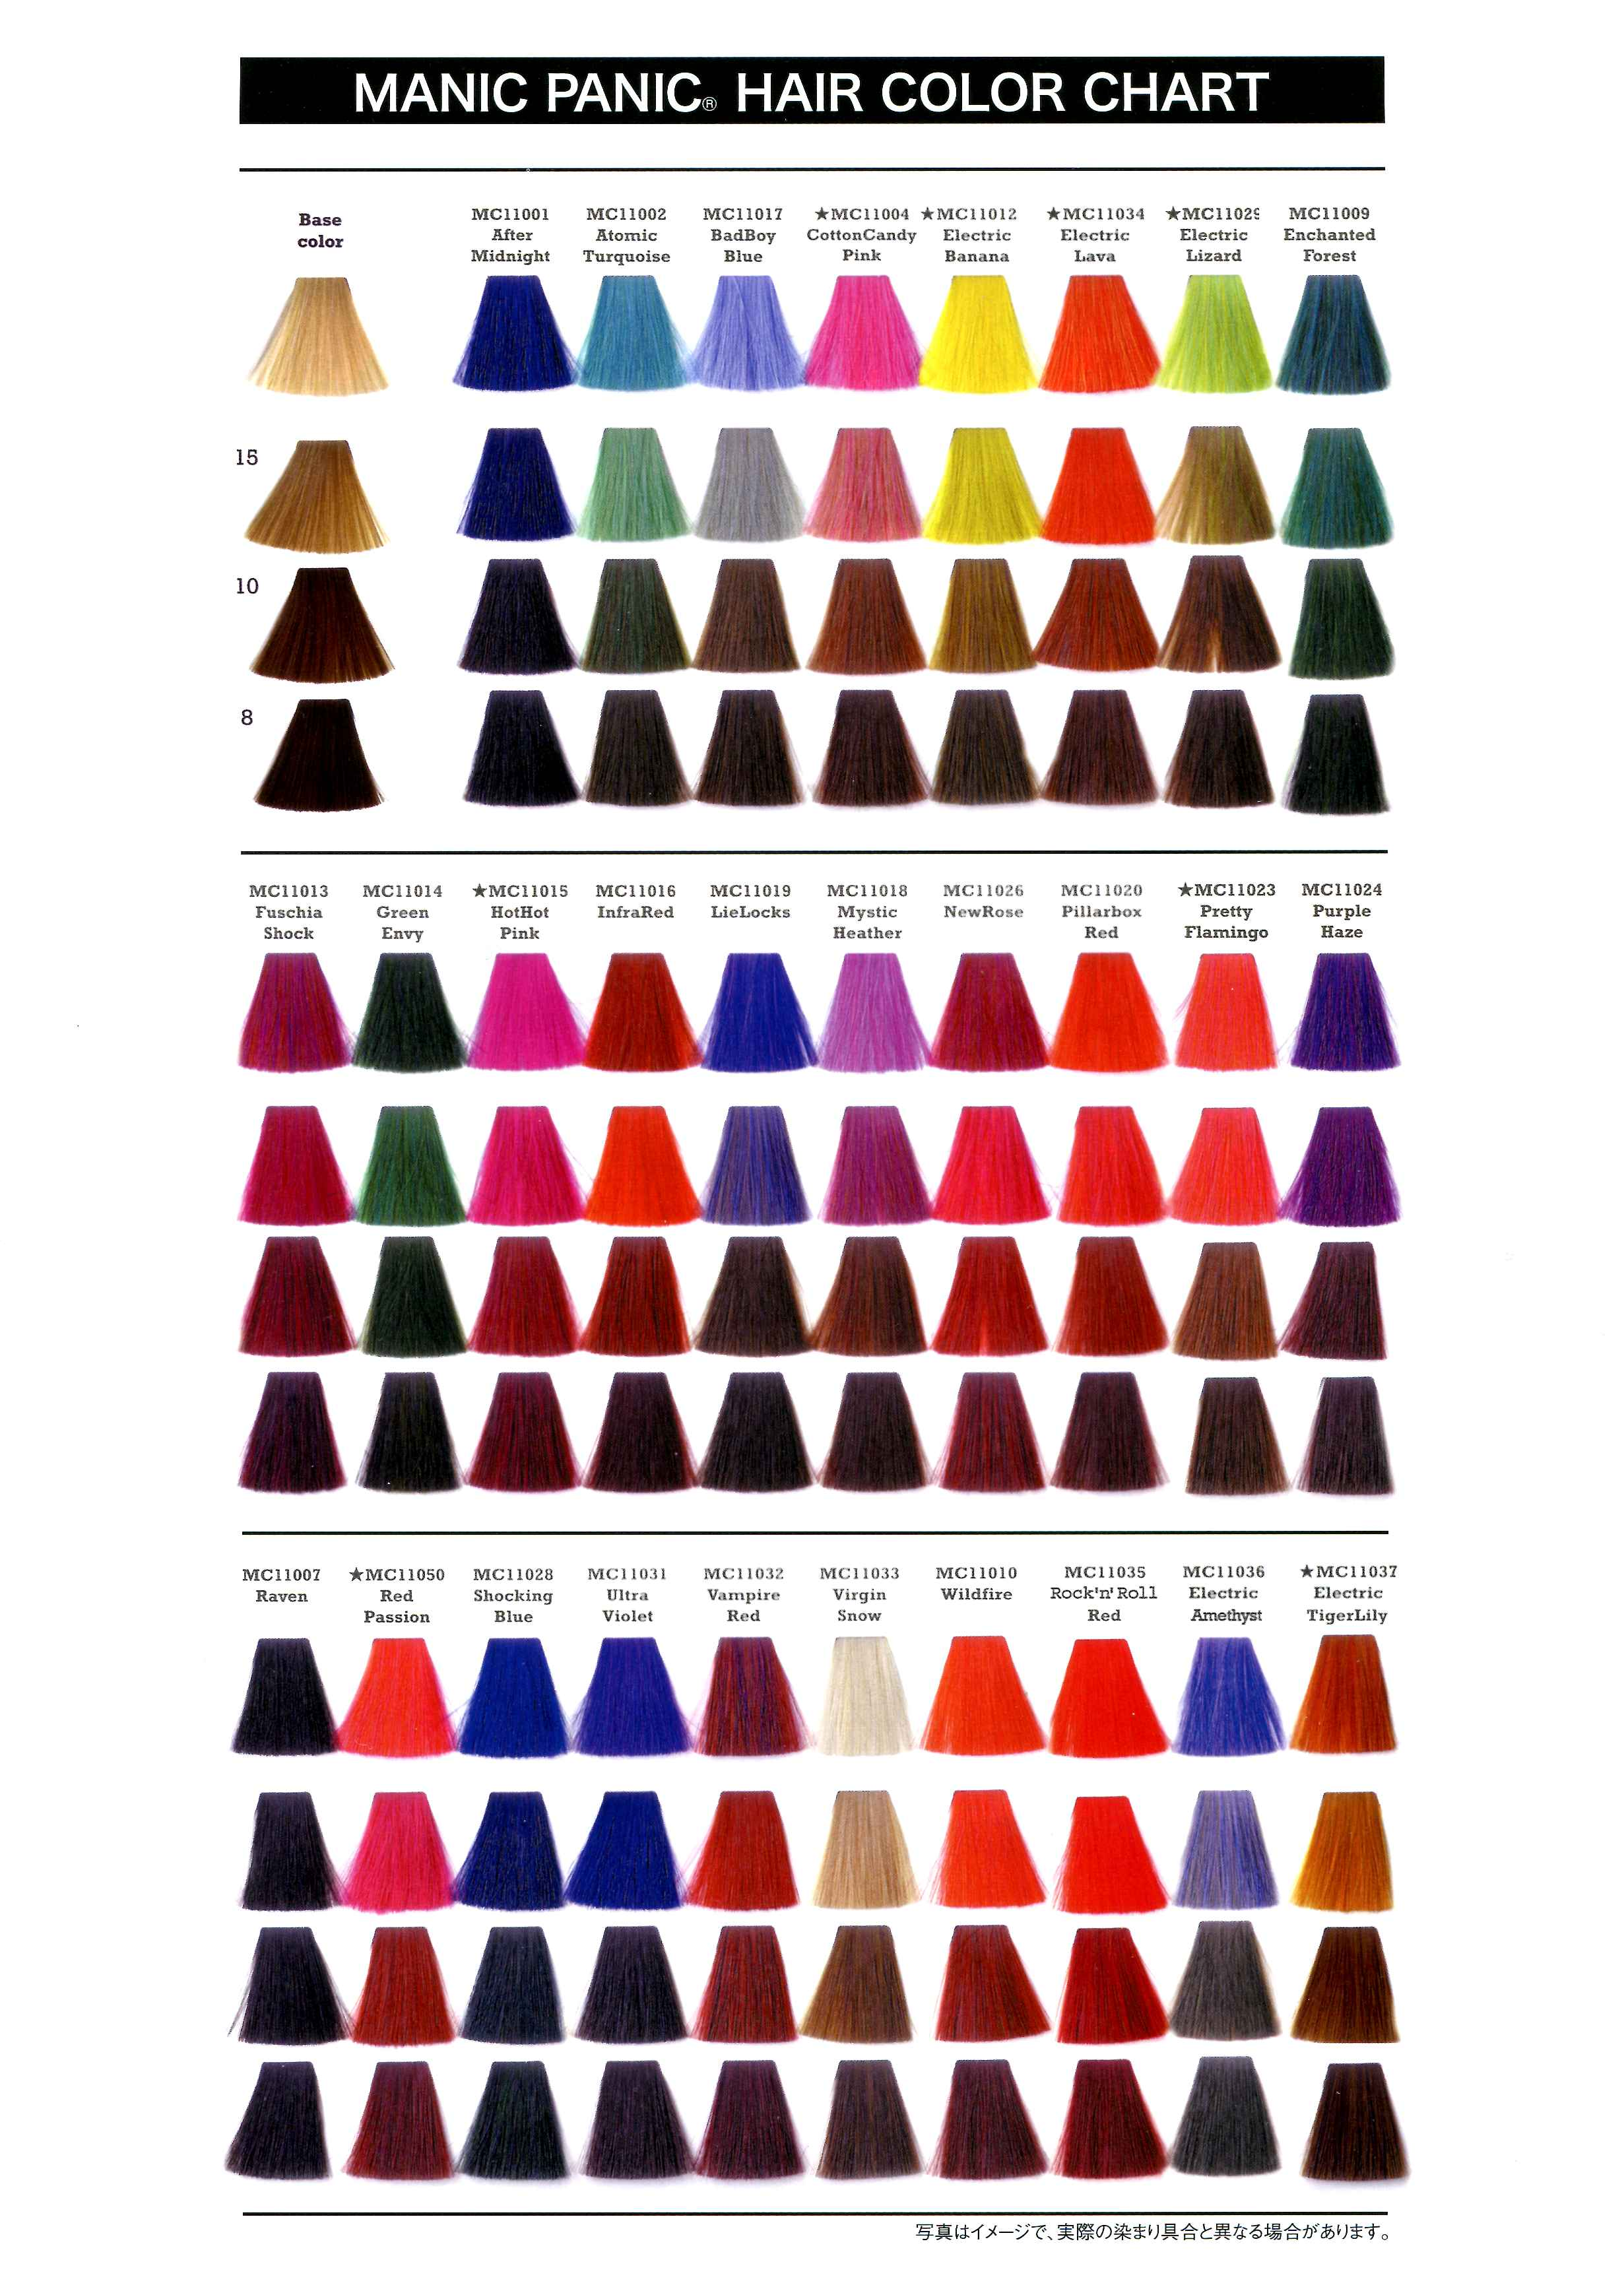 Hair Color Chart Manic Panic Hairstyle Pinterest Manic Panic